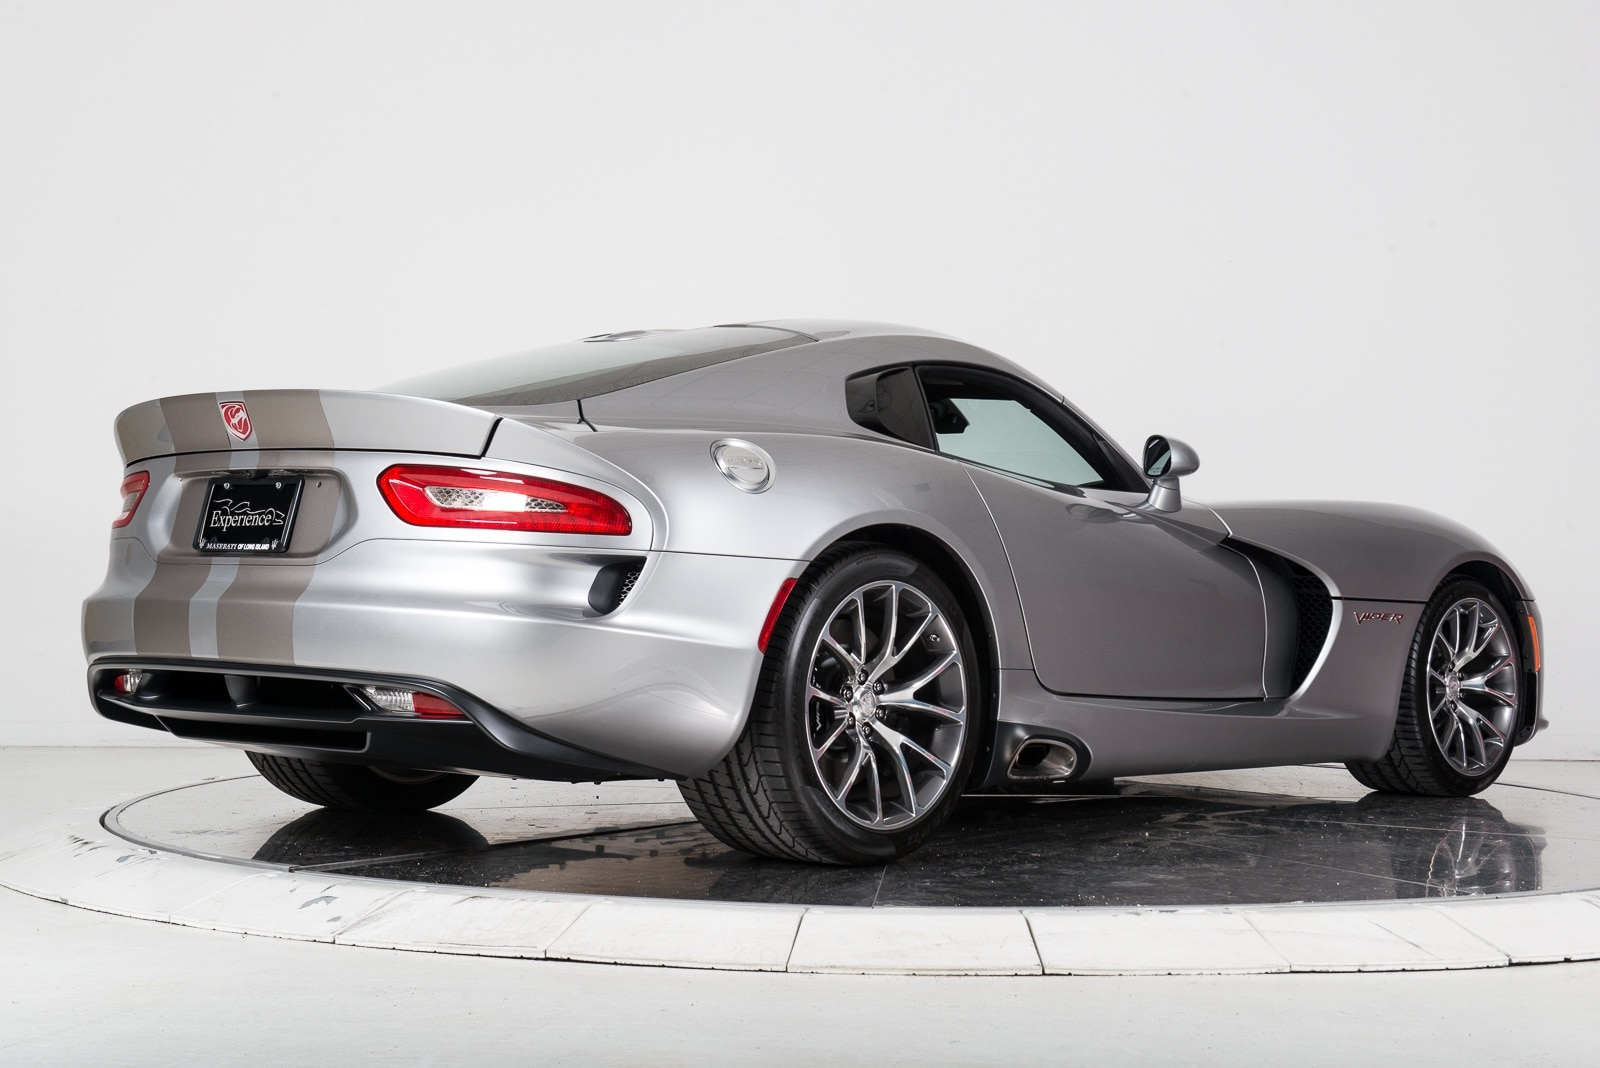 2015 dodge viper srt coupe for sale in plainview ny at maserati of long island - Dodge Viper 2015